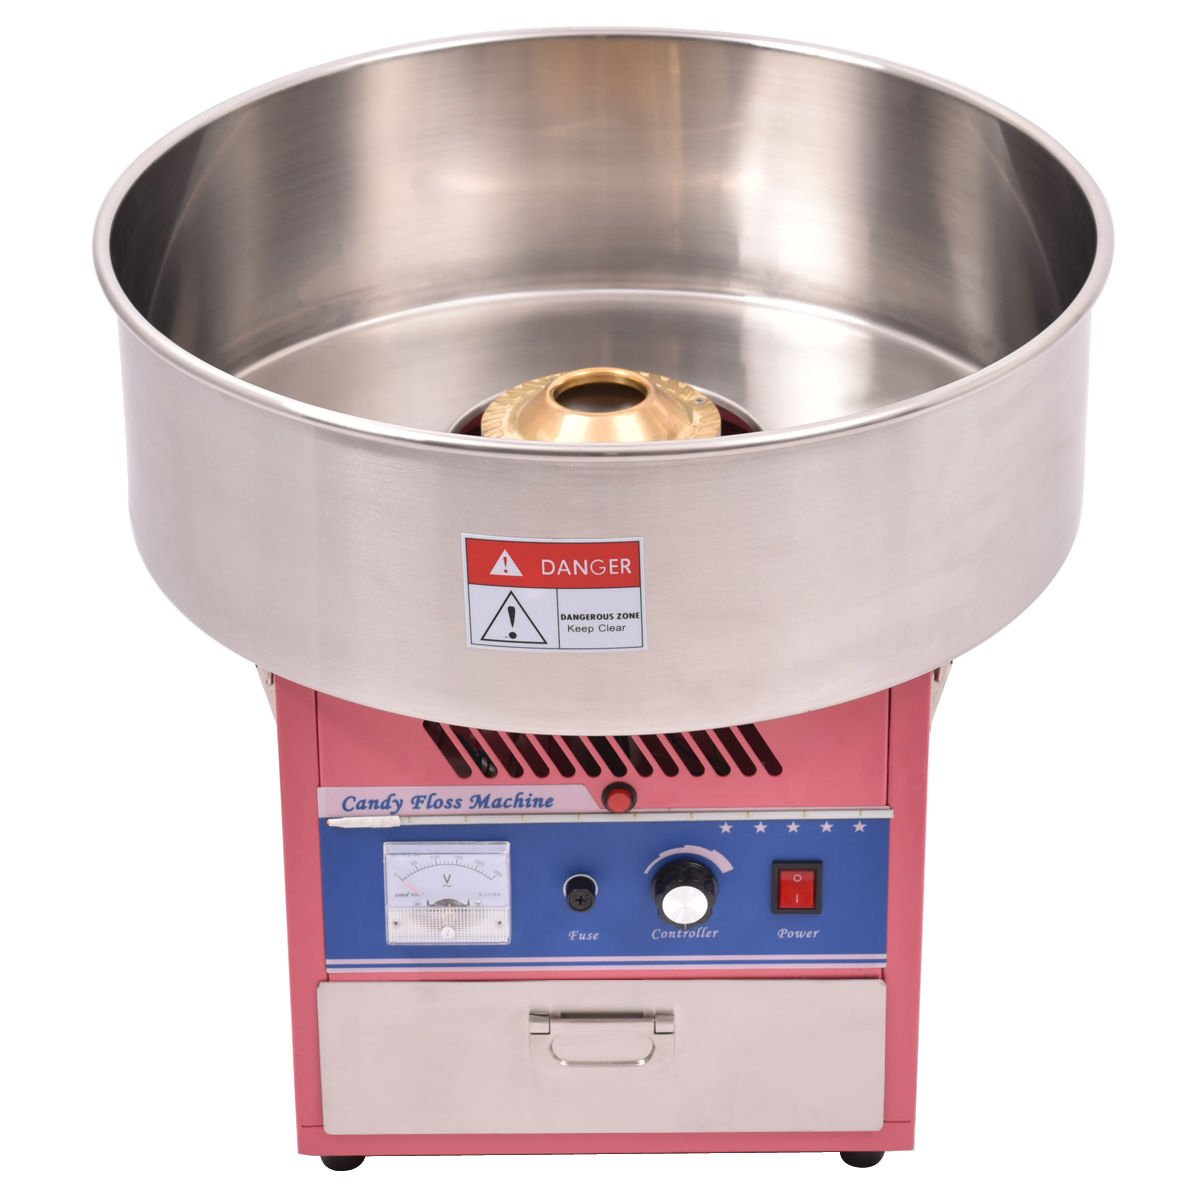 Giantex Electric Cotton Candy Machine Floss Maker Commercial Carnival Party Pink by Giantex (Image #2)